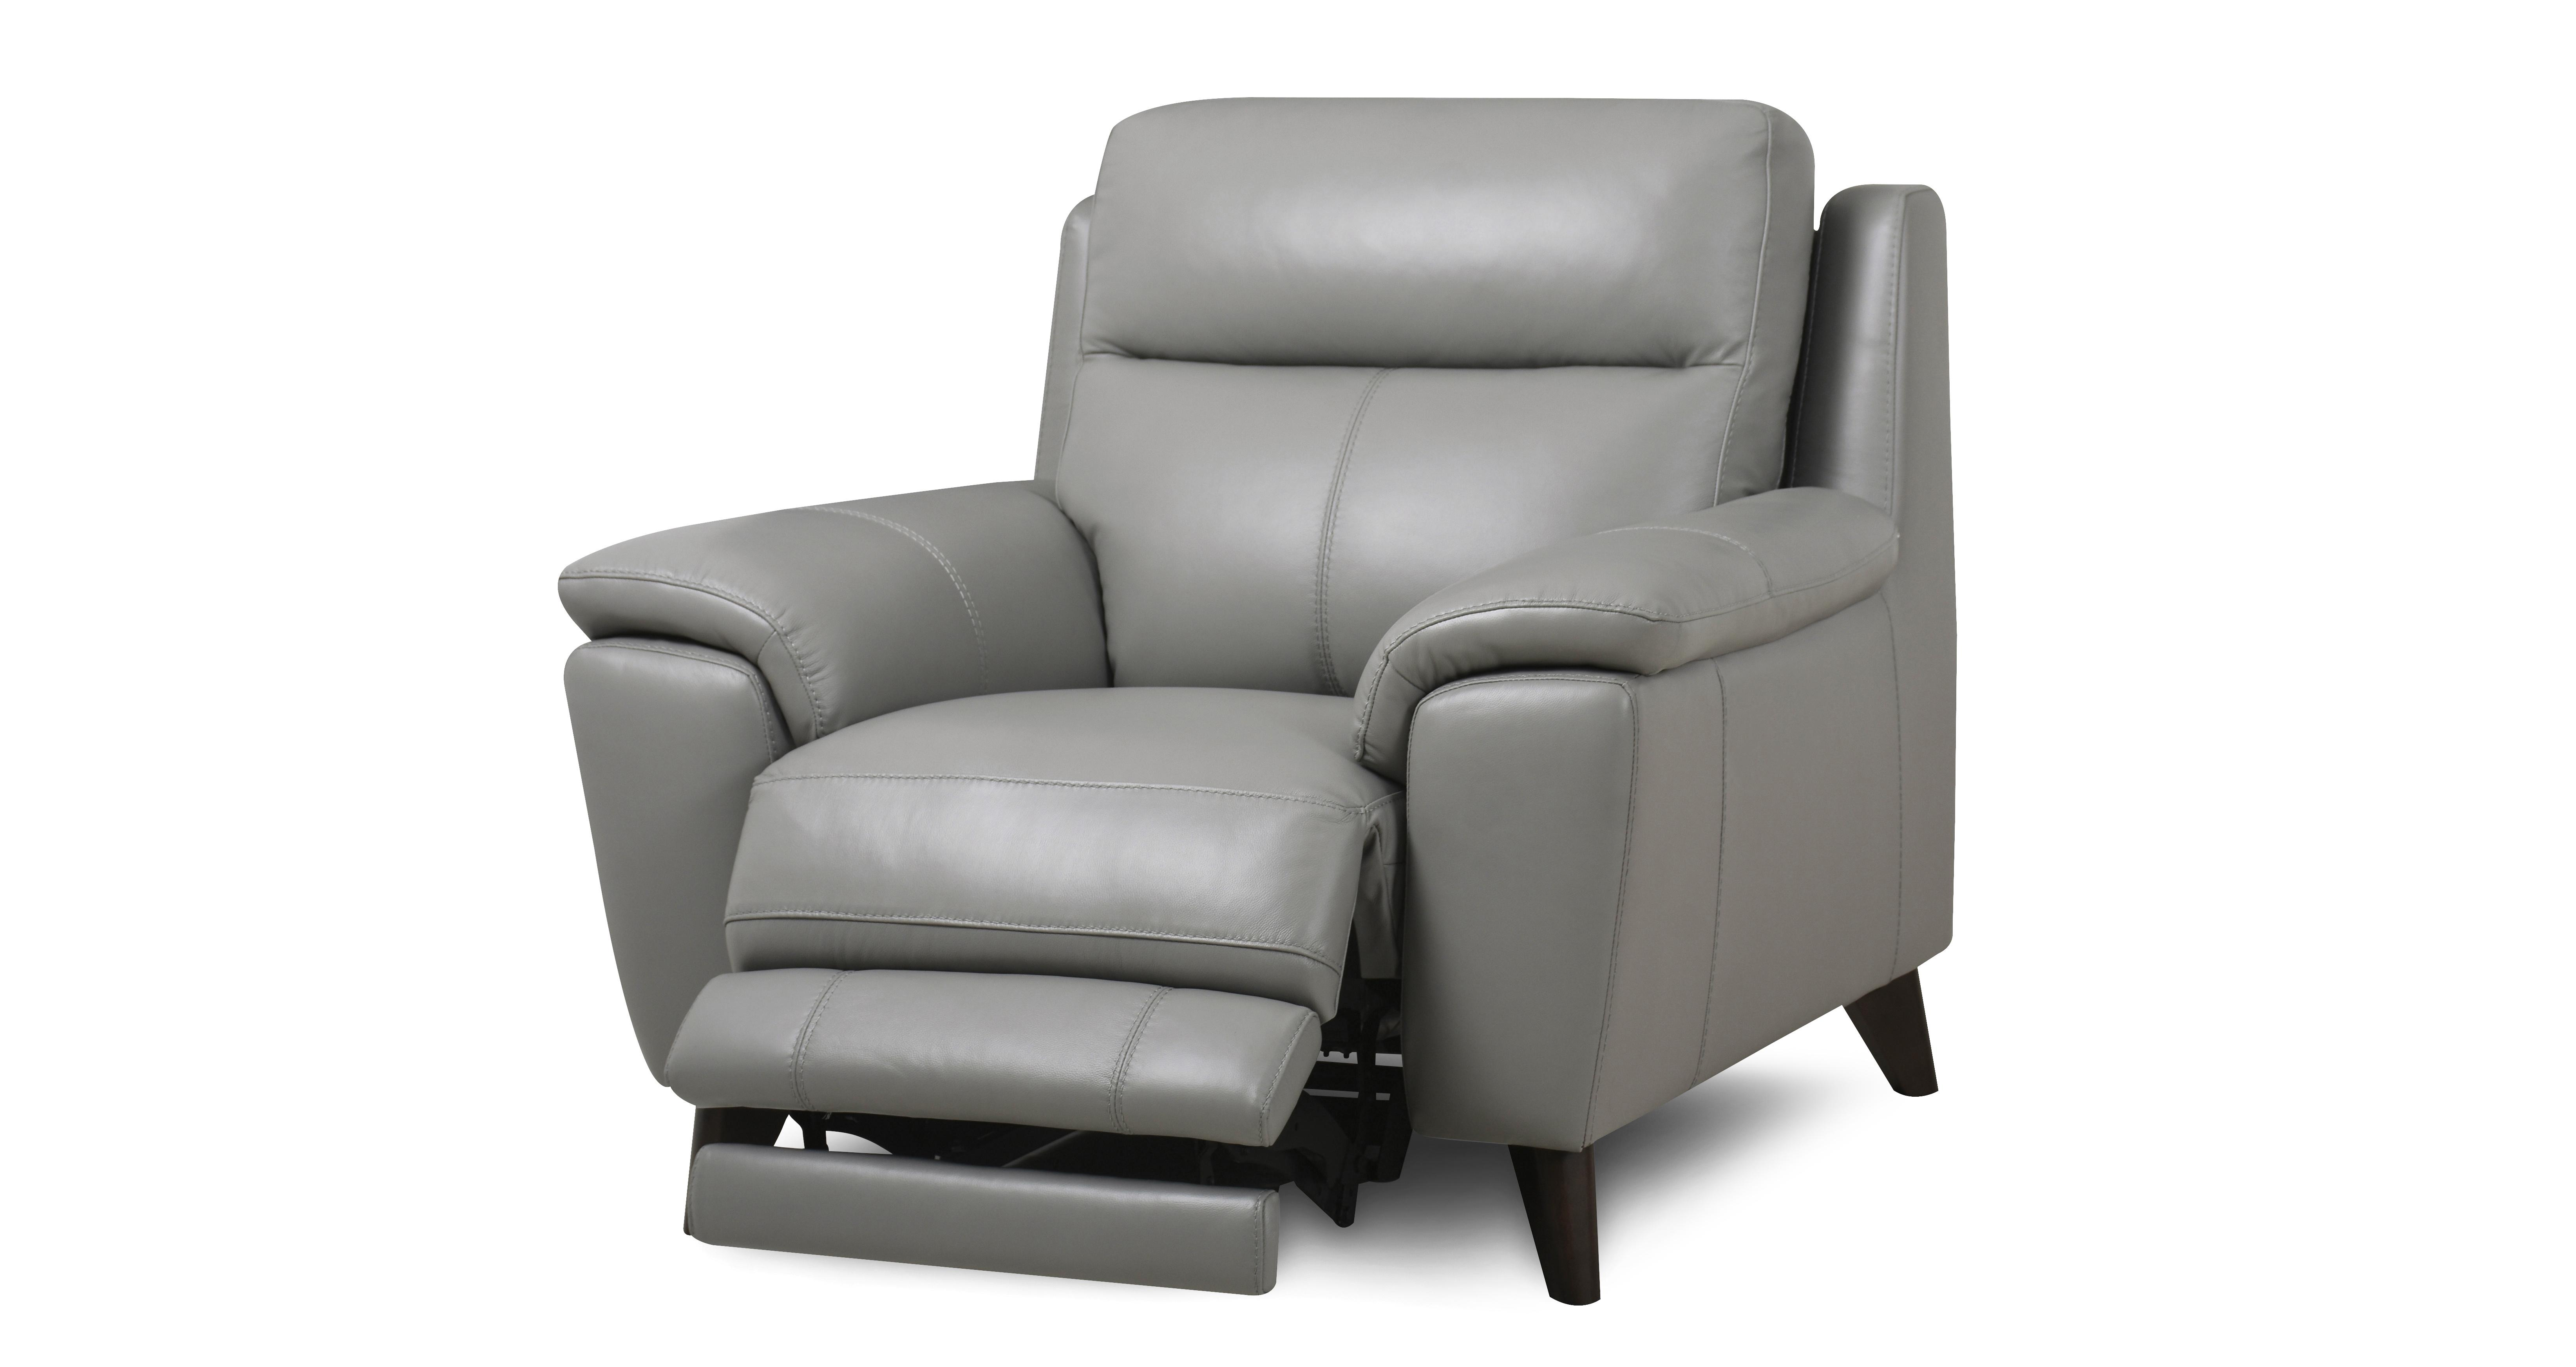 Recliner Chairs In A Range Of Styles For Your Home | DFS